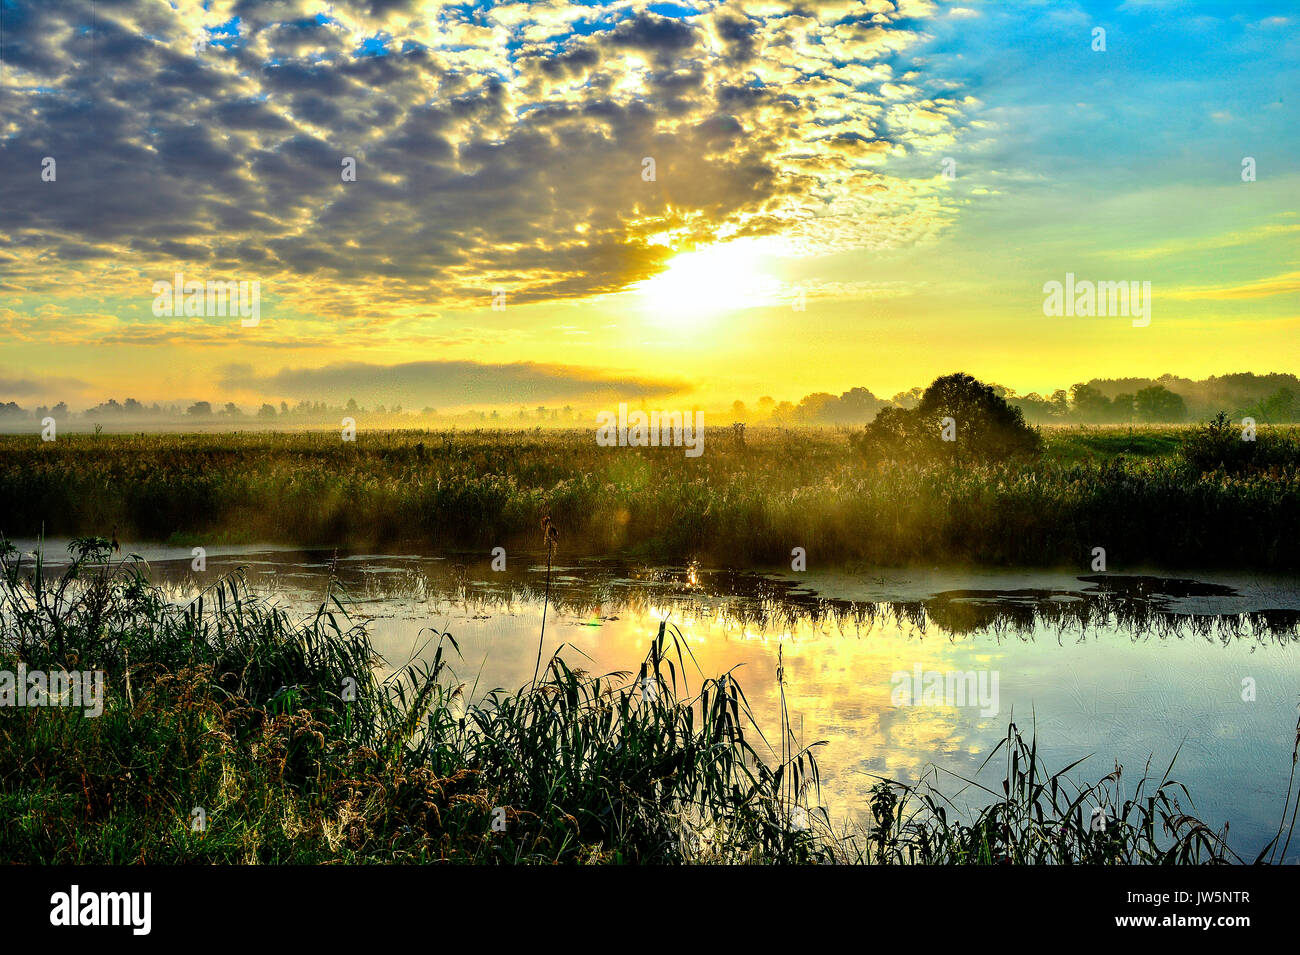 Photo with a sunny summer sunrise over the river - Stock Image